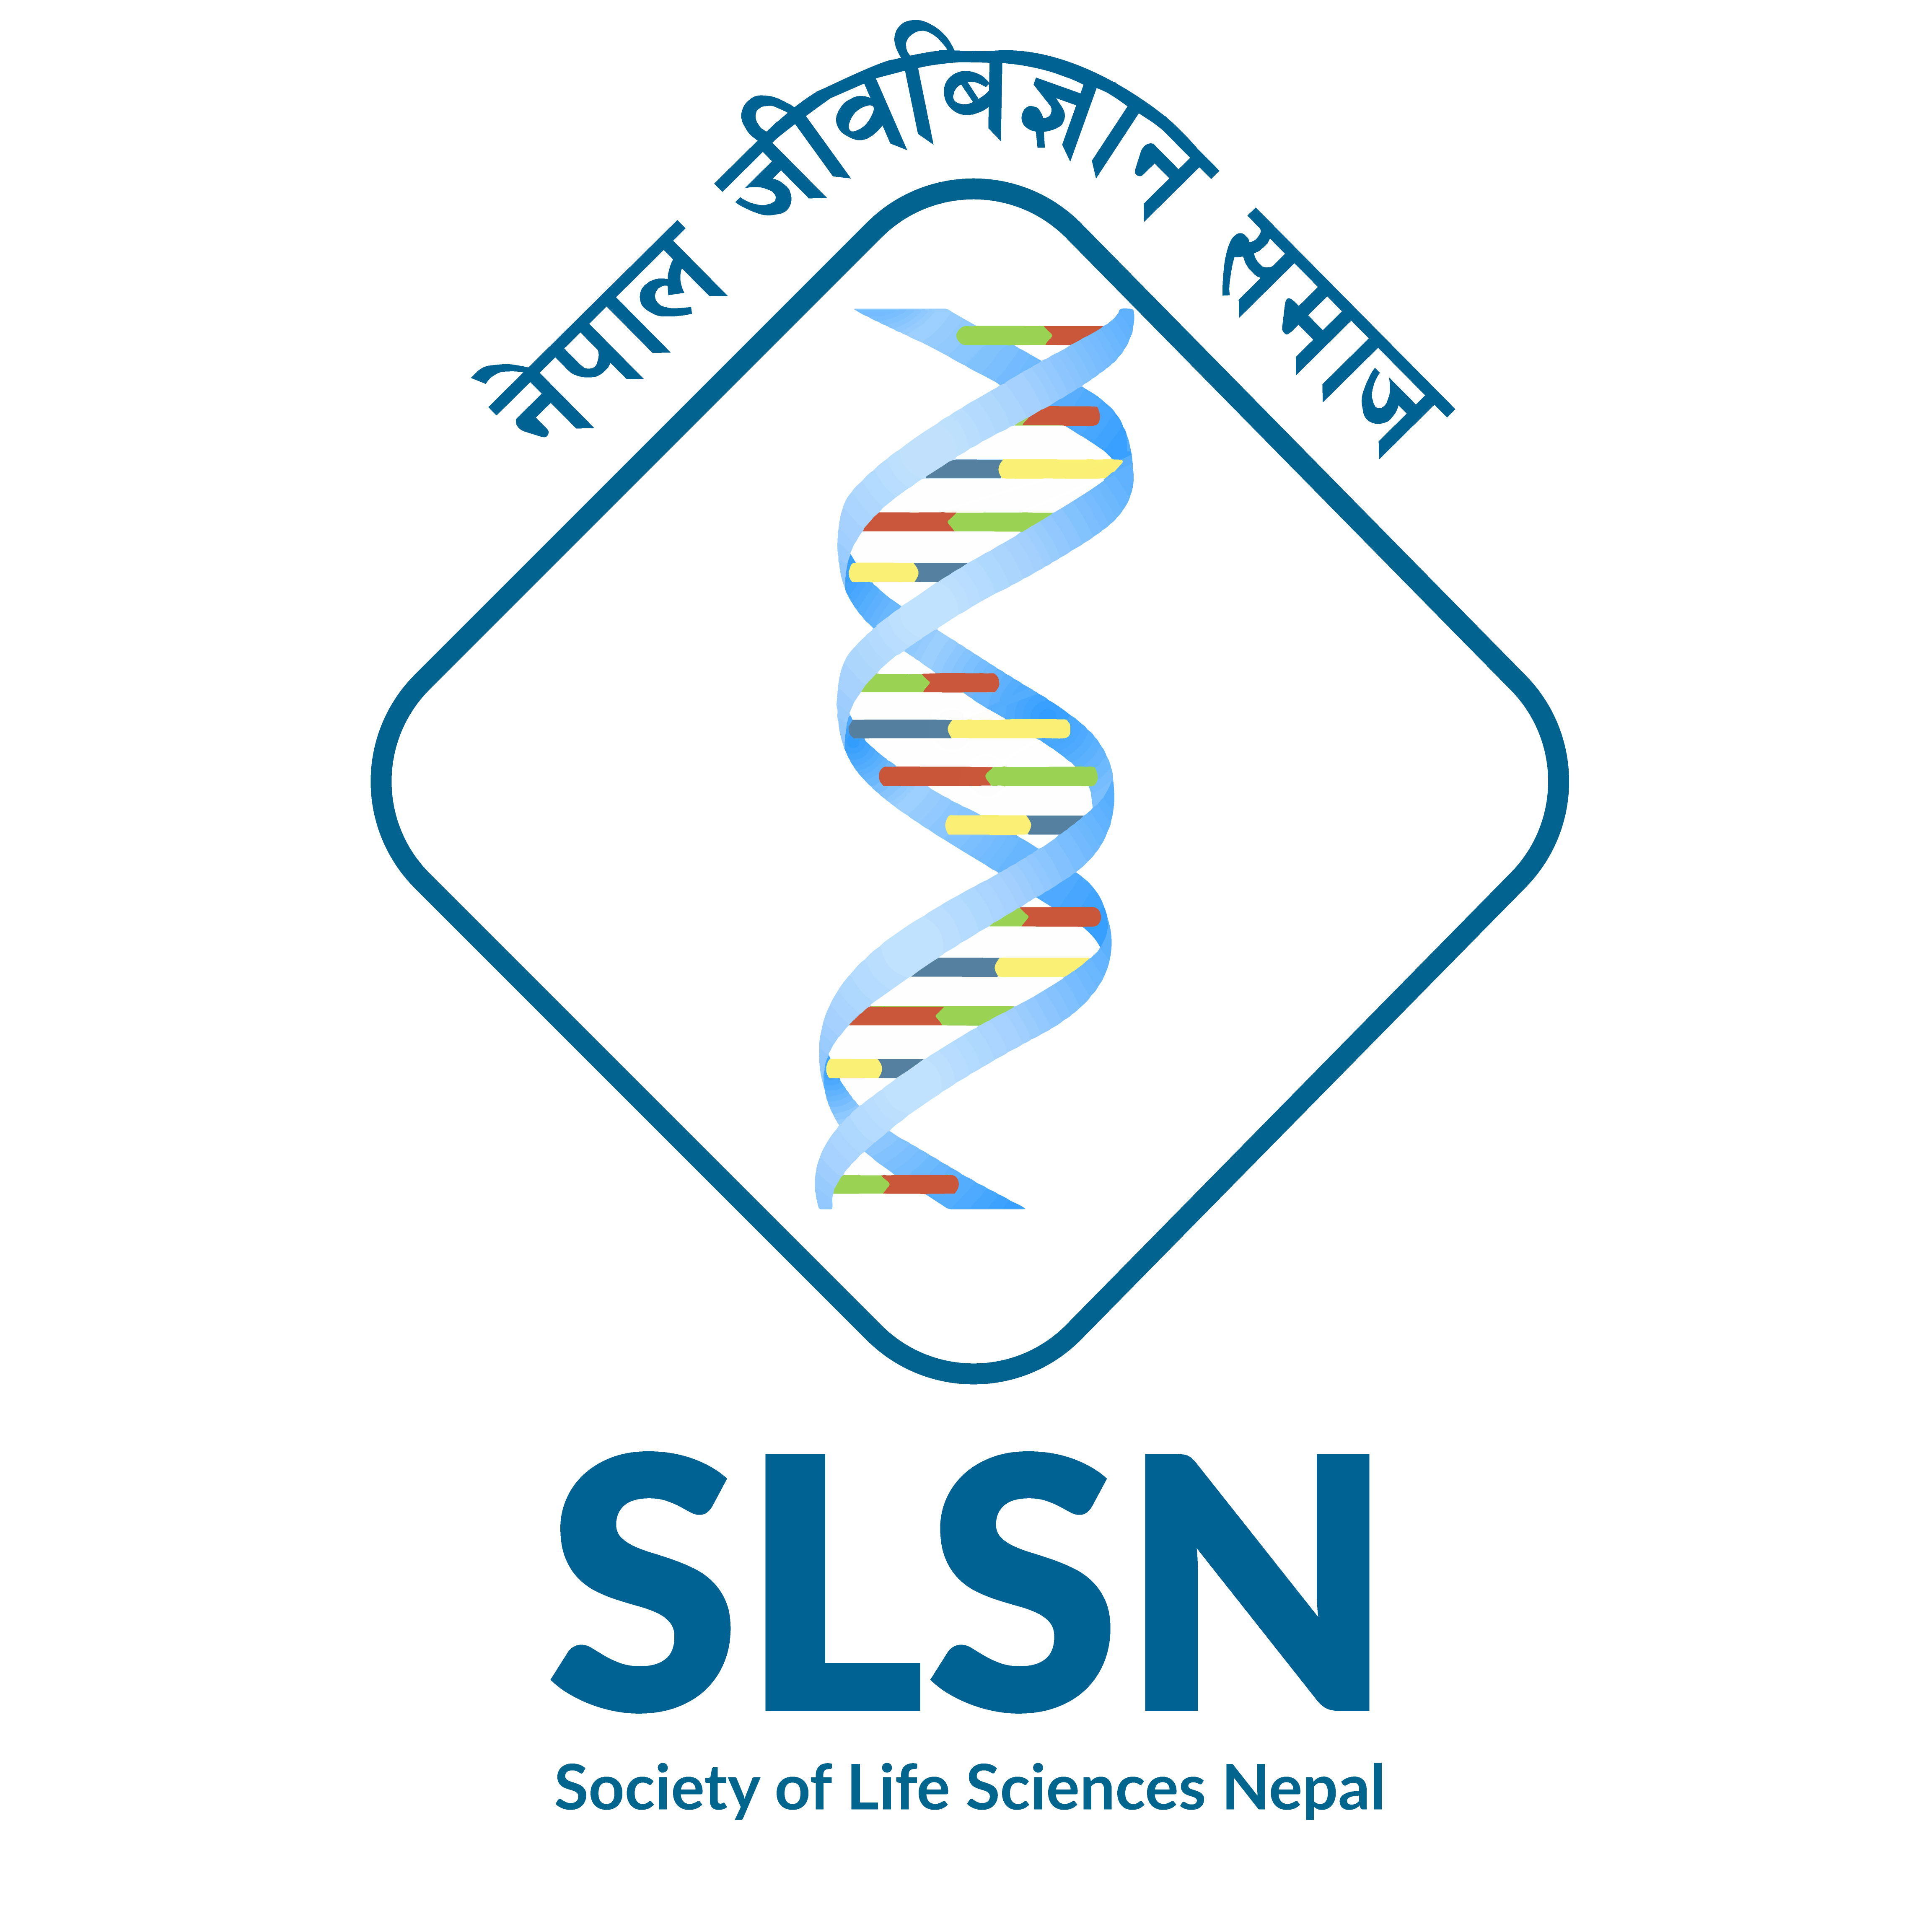 Volunteer with Society of Life Sciences Nepal